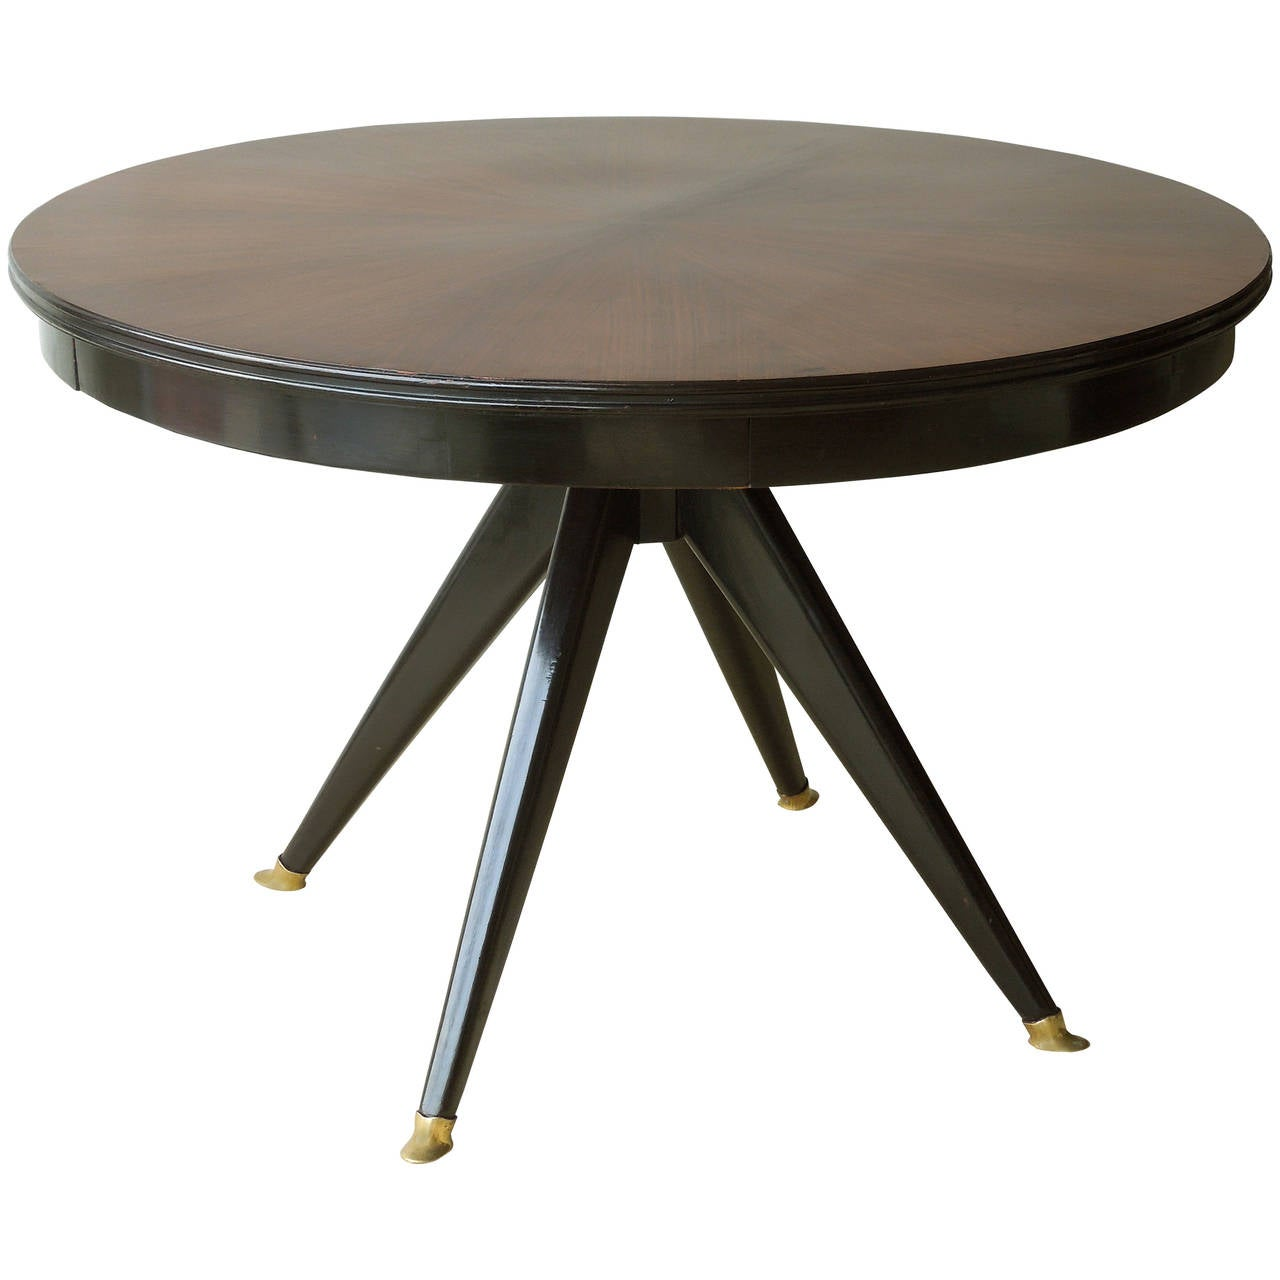 Mid century modern round center dining table at 1stdibs for Contemporary round dining table